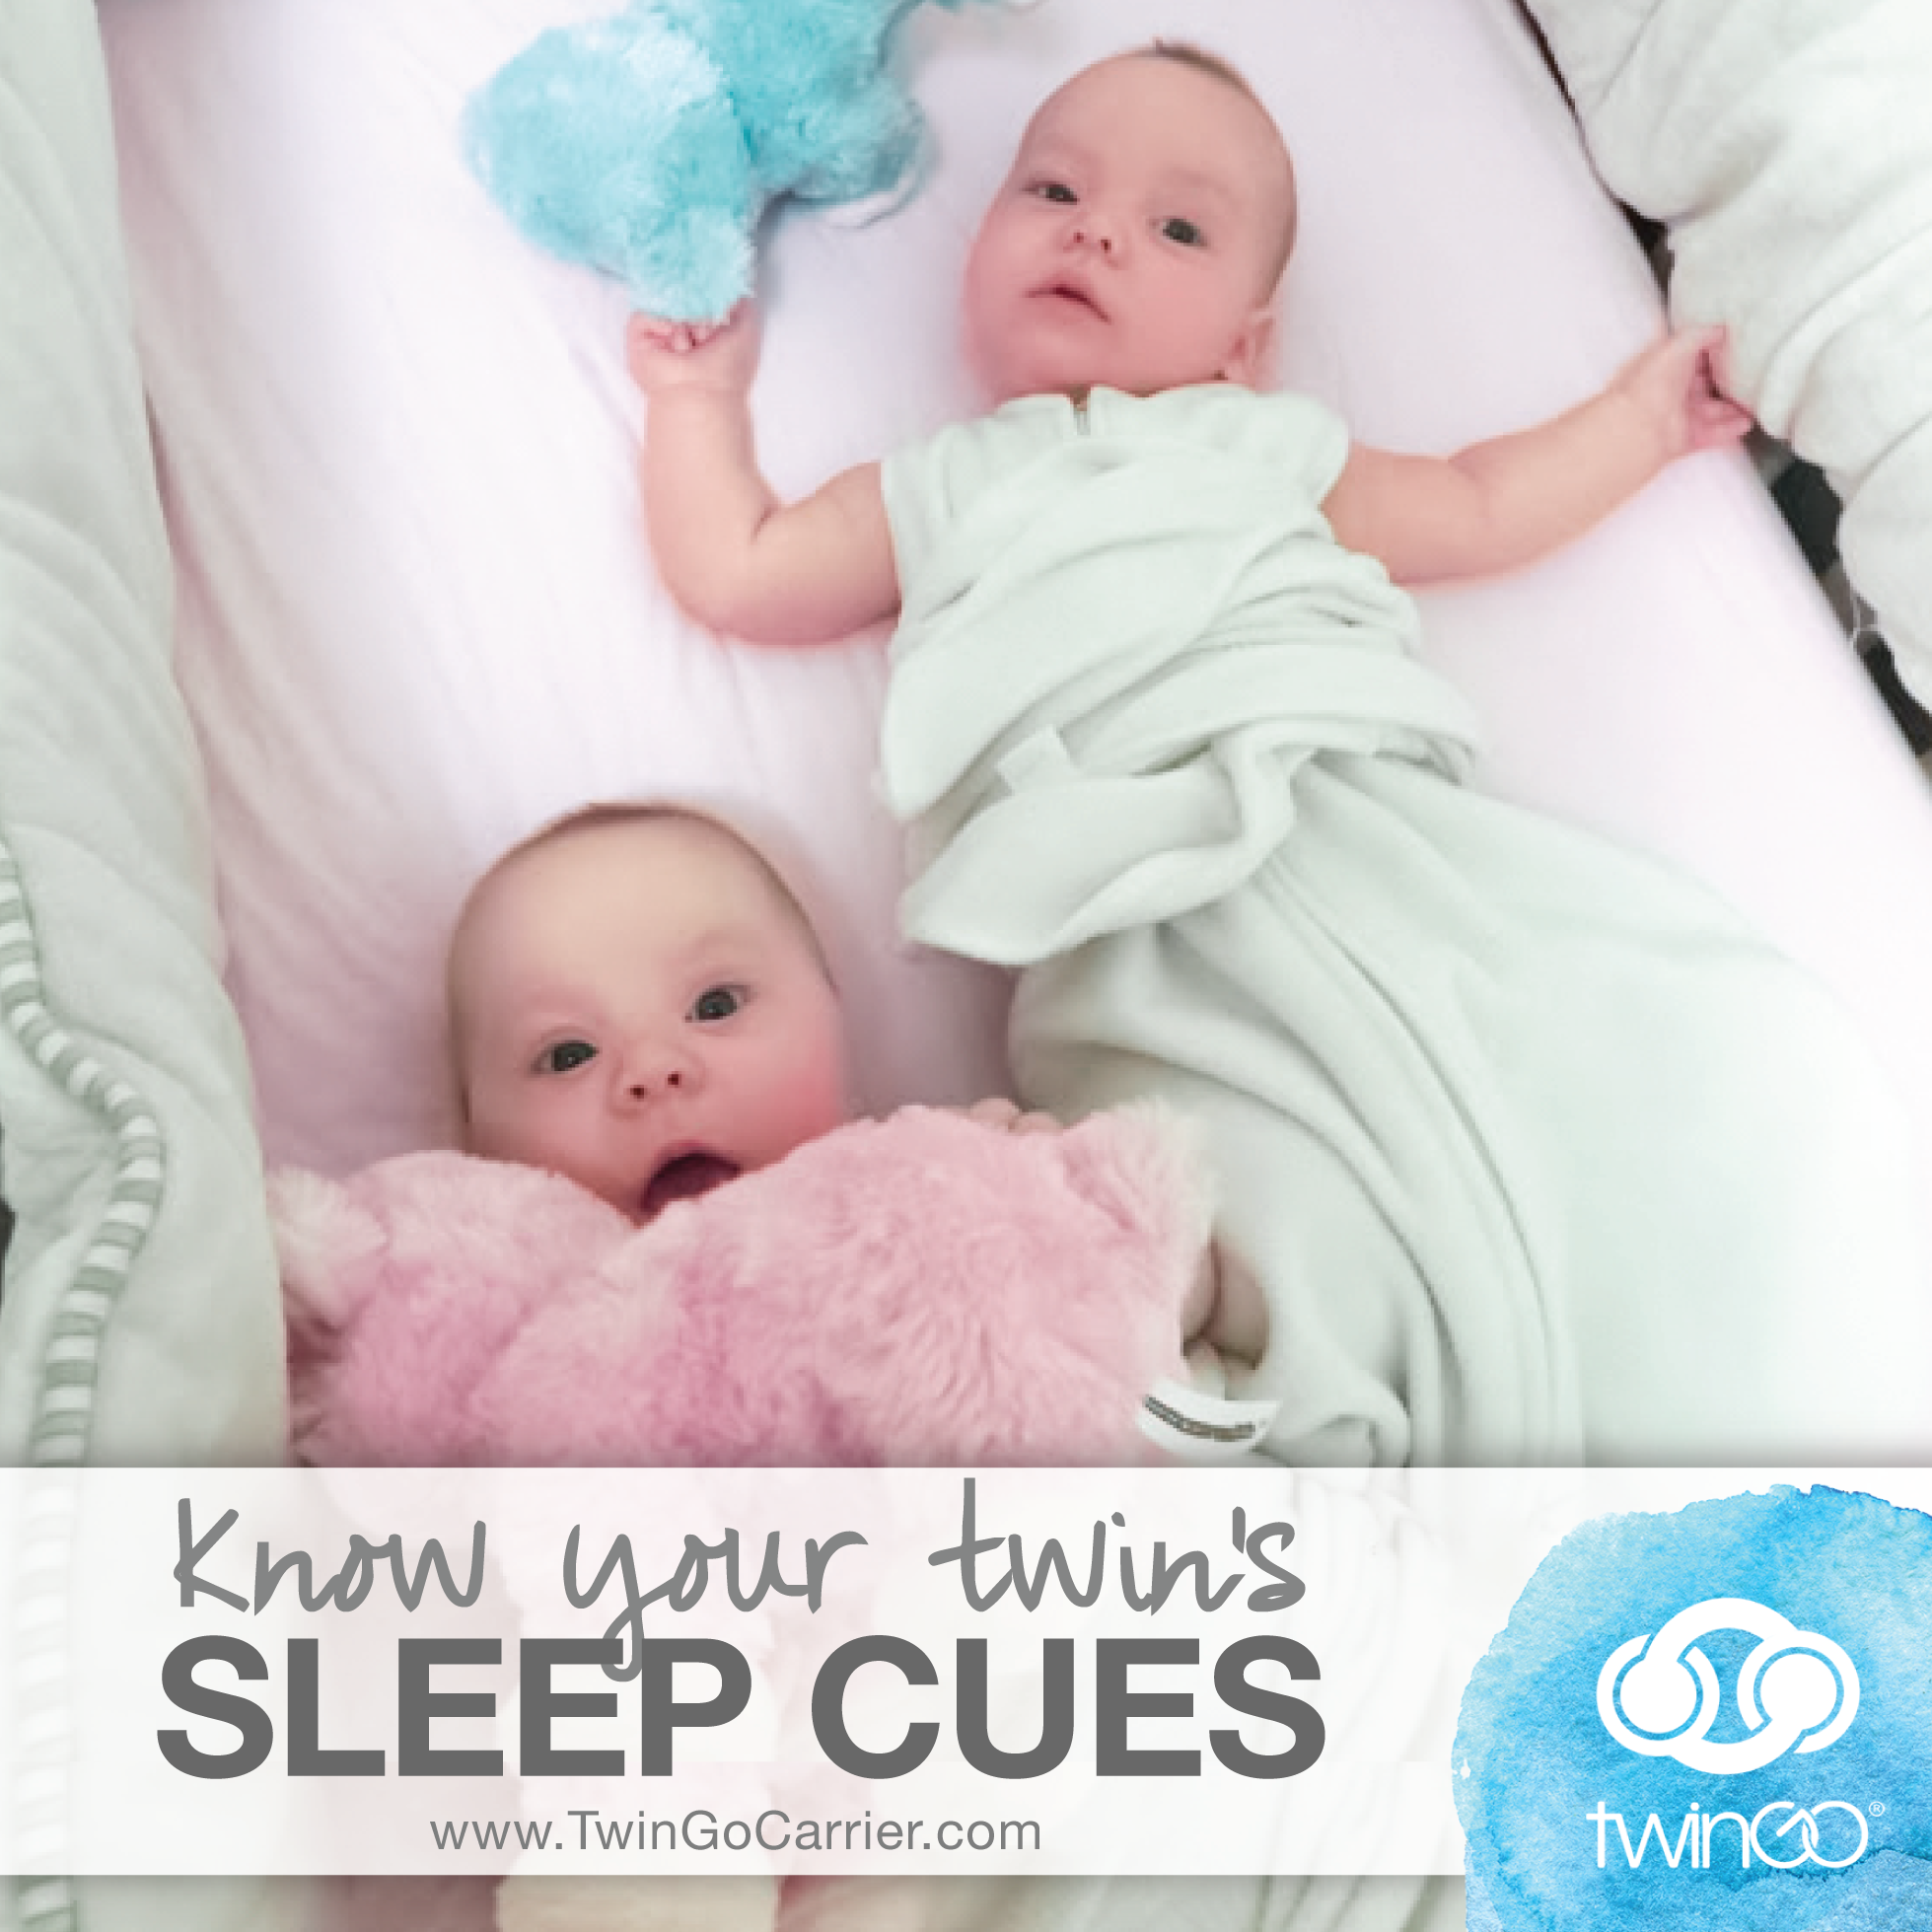 Top Tip for Twin Sleep: Know Their Sleep Cues